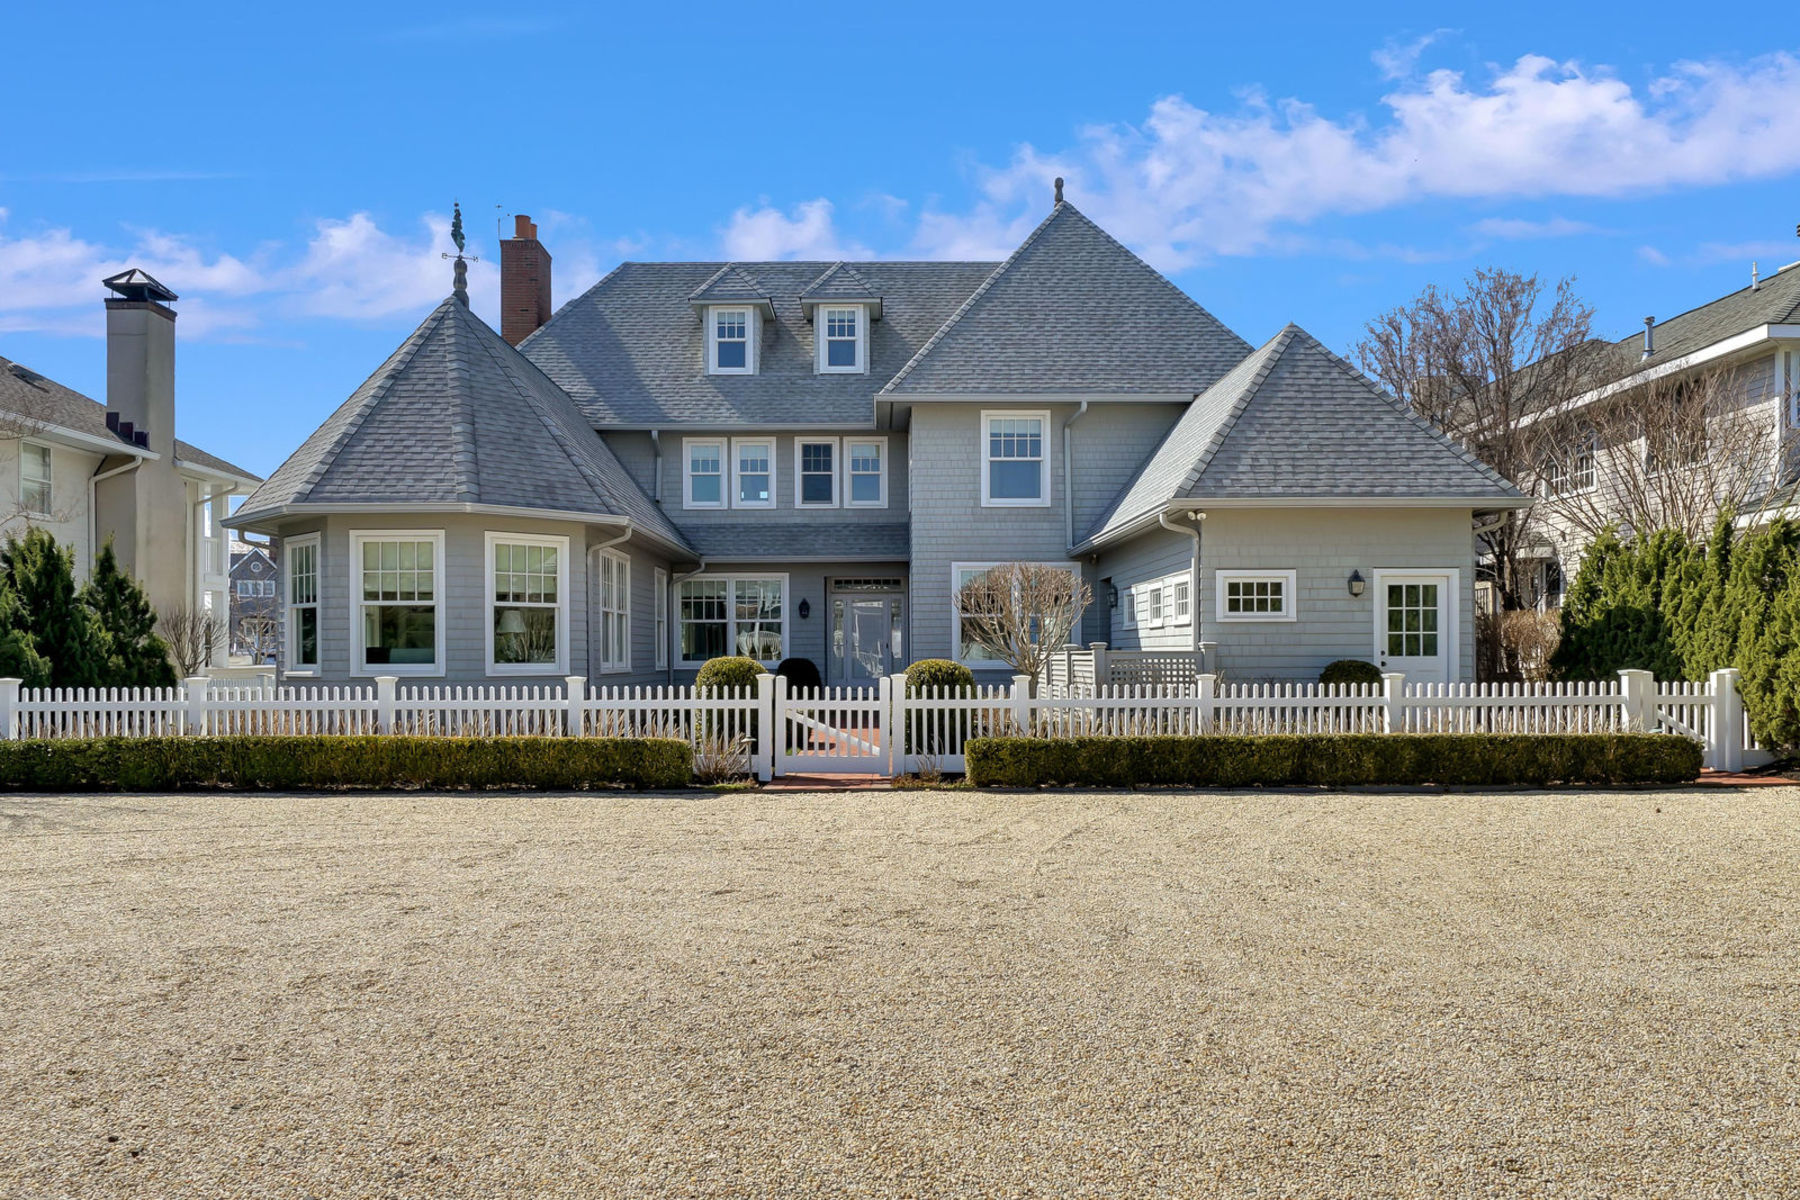 Maison unifamiliale pour l Vente à Exquisitely Appointed Lagoon Front Home Offers Shore Living At It's Finest 950 Barnegat Lane, Mantoloking, New Jersey 08738 États-Unis